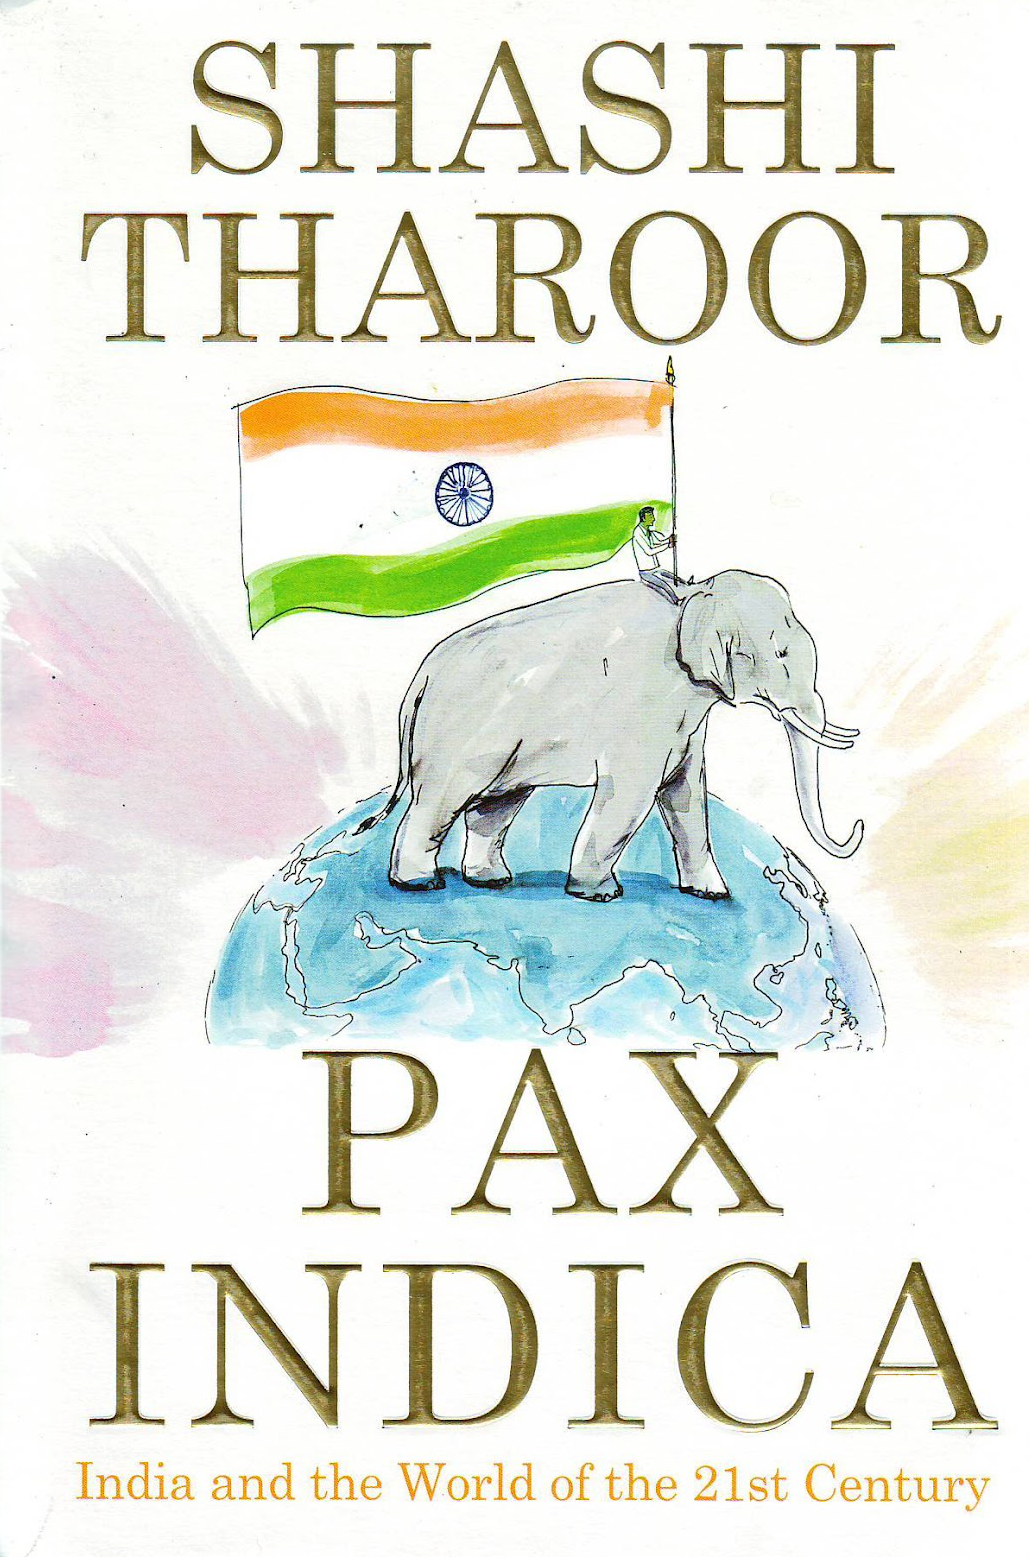 'Pax Indica' by Dr. Shashi Tharoor